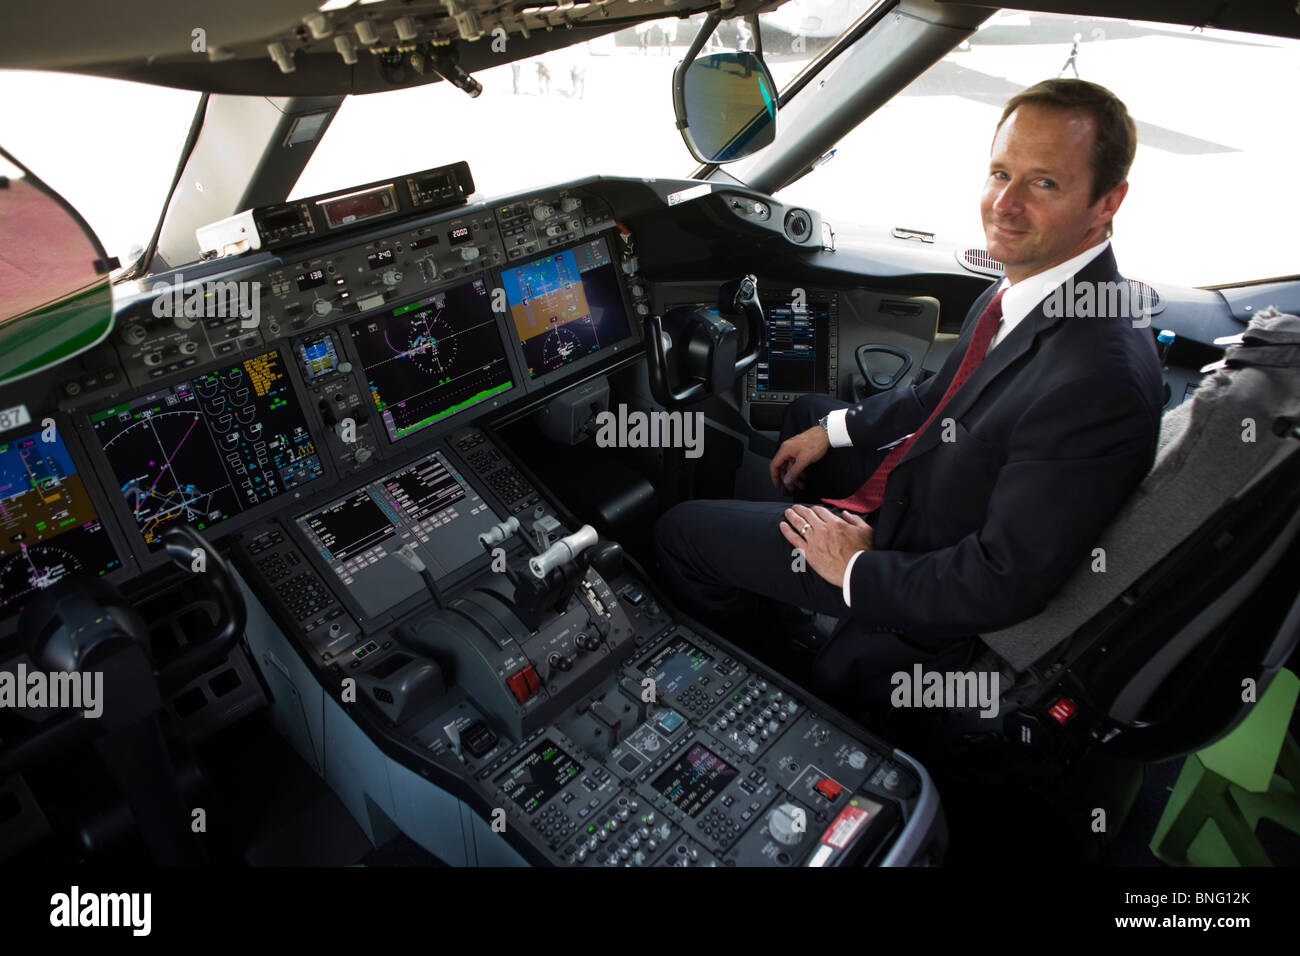 Boeing pilot portrait with LCD screens inside glass cockpit of company 787 Dreamliner - Stock Image